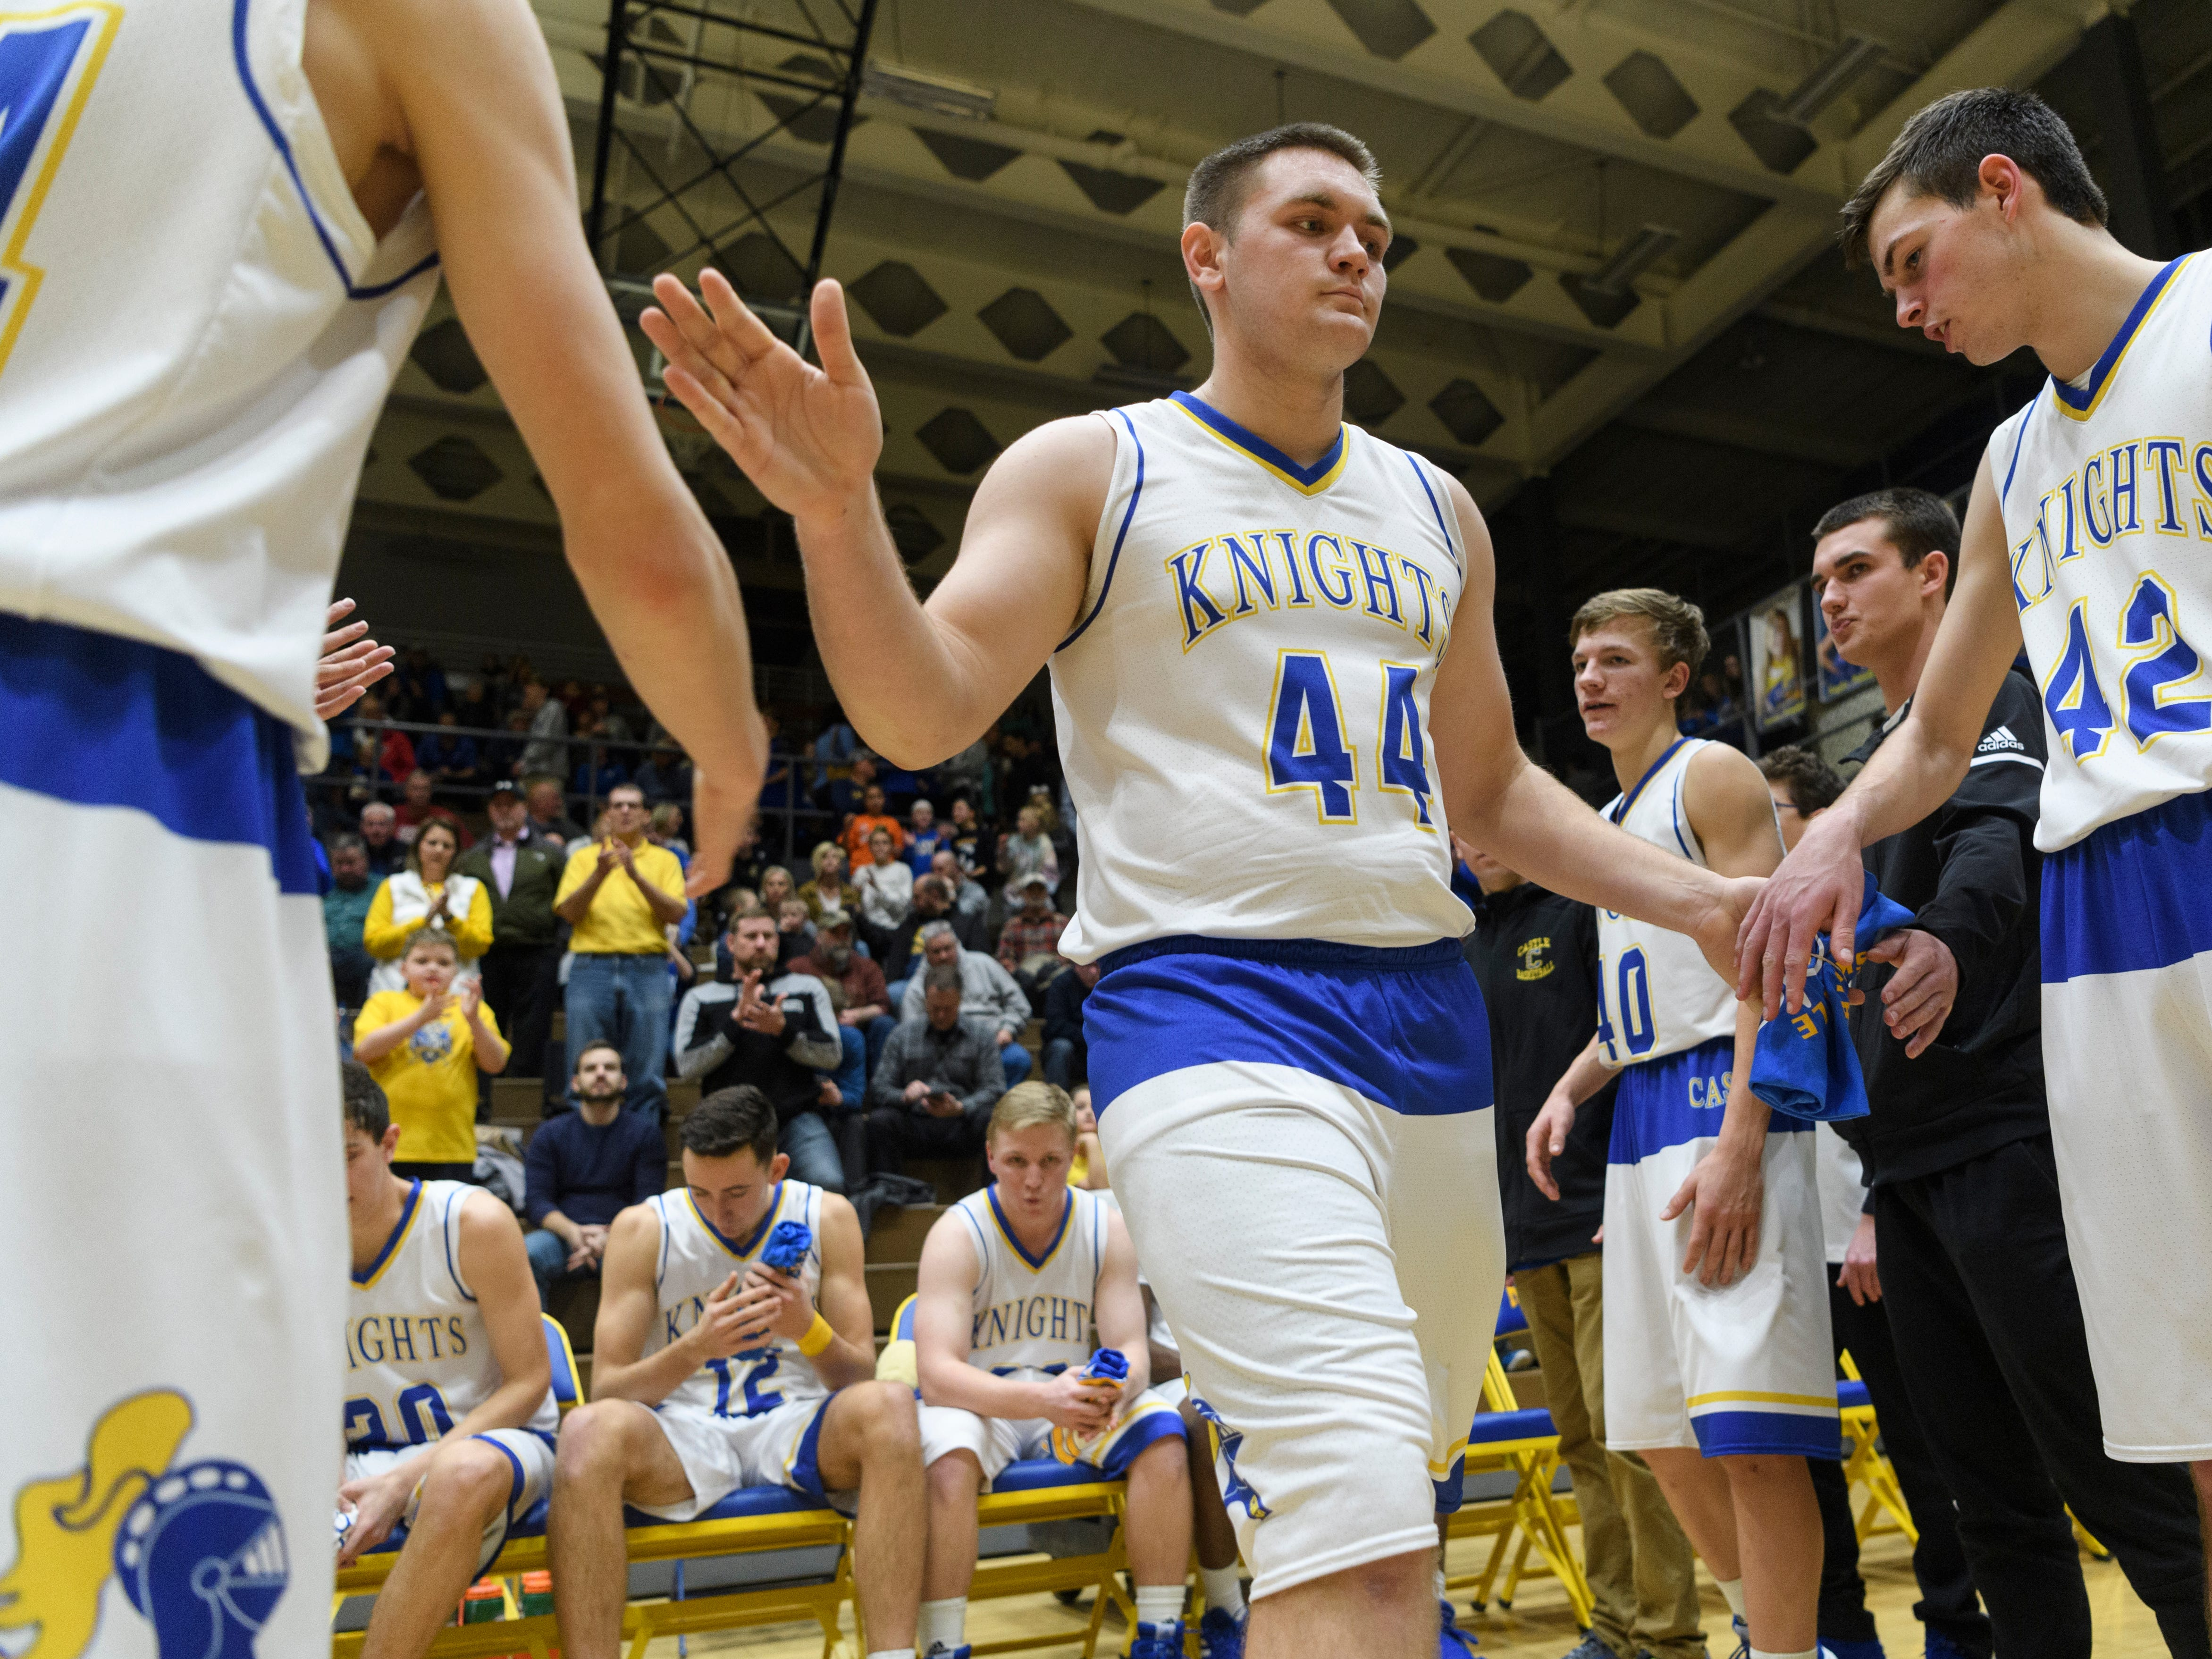 Castle's Brodey Heaton (44) is announced as a starter before the game against the Memorial Tigers at Castle High School in Newburgh, Ind., Friday, Jan. 4, 2019. The Knights defeated the Tigers, 72-43.